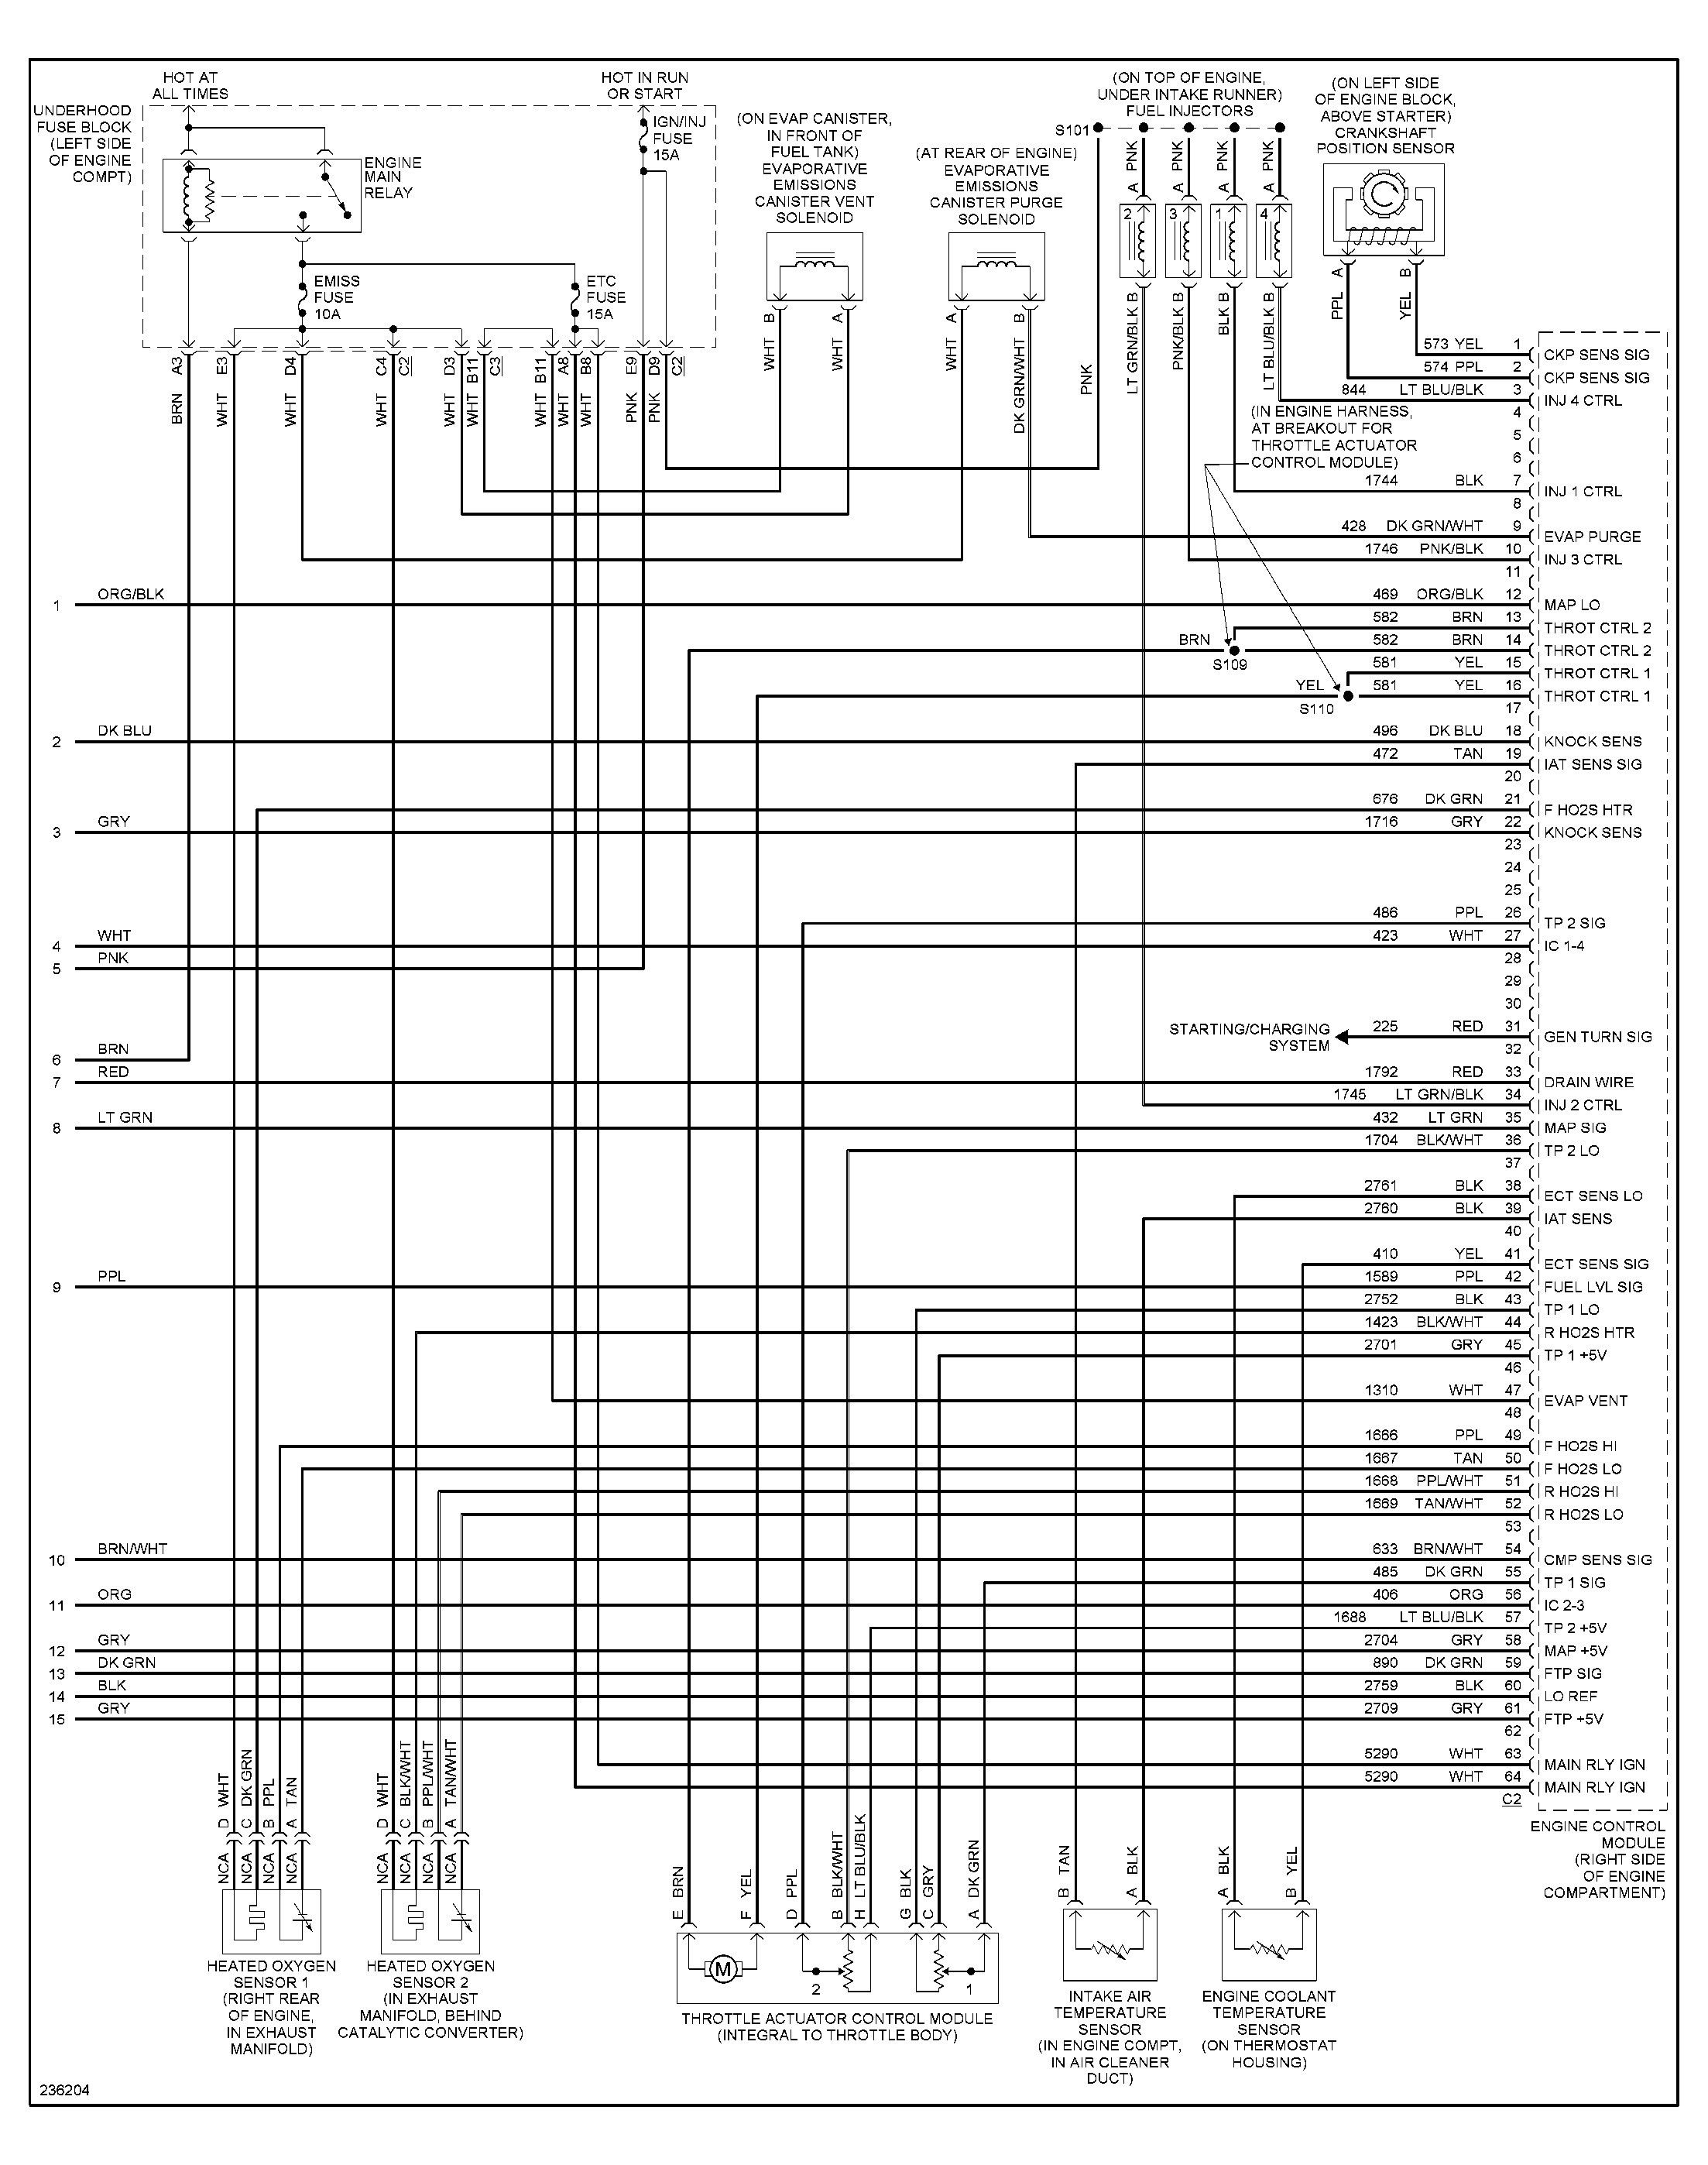 Best Of 2001 Saturn Sl1 Radio Wiring Diagram Wiring Diagram Image 1998  Saturn SL1 Fuse Box Diagram Saturn Sl1 2001 Radio Wiring Diagram